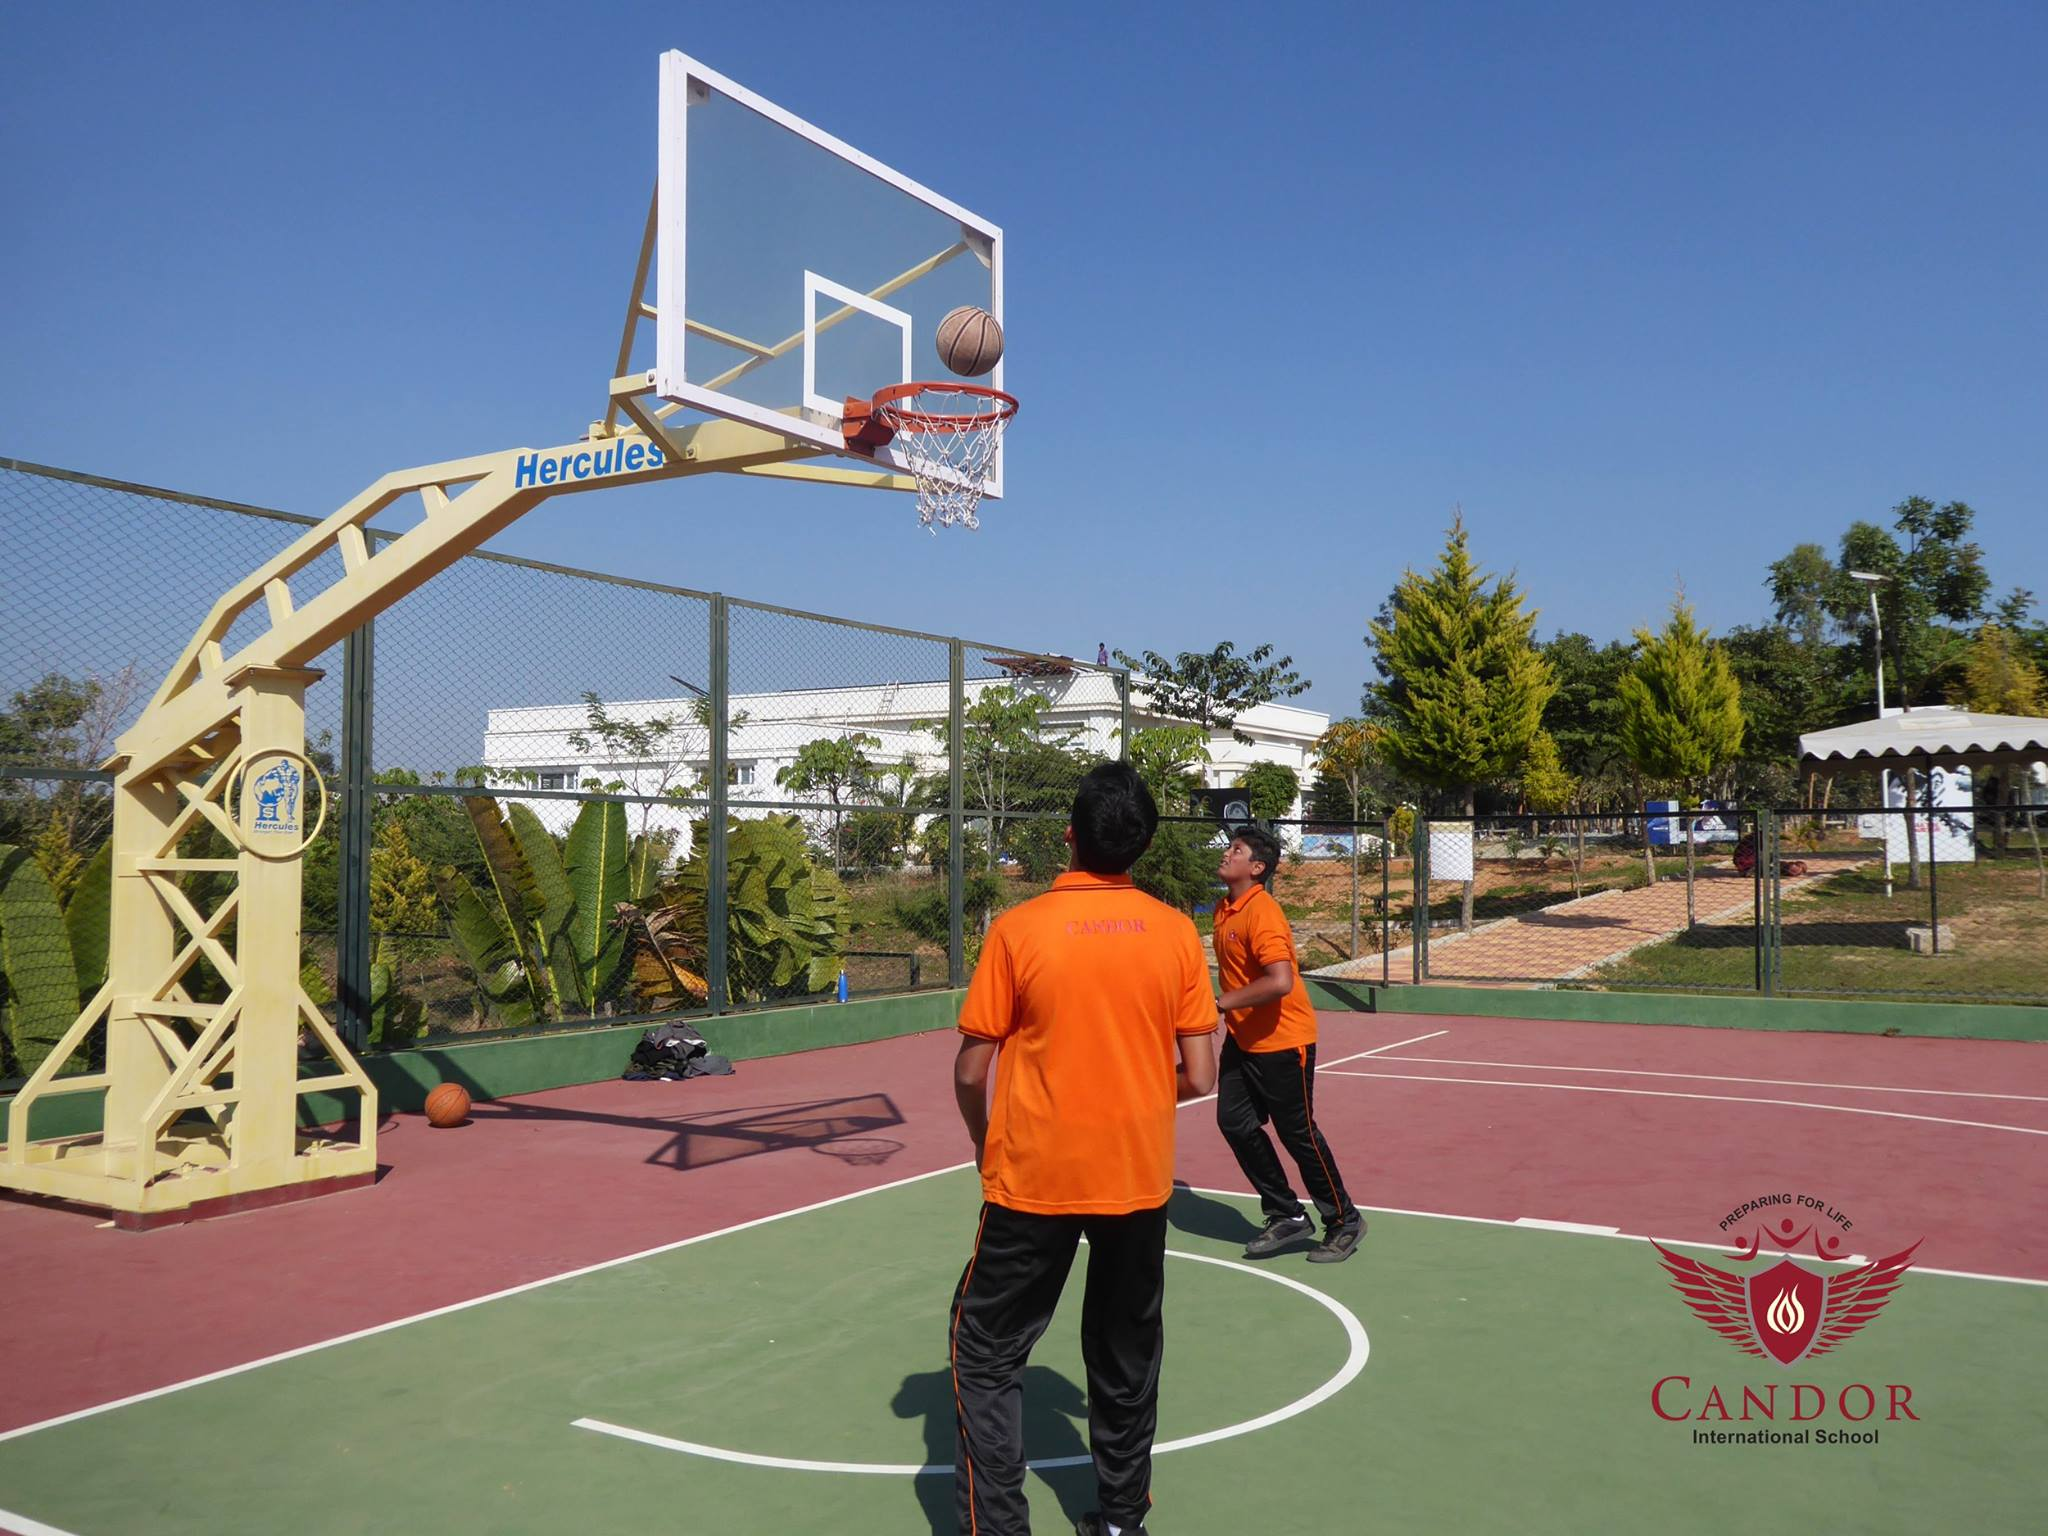 Basketball coaching session in progress